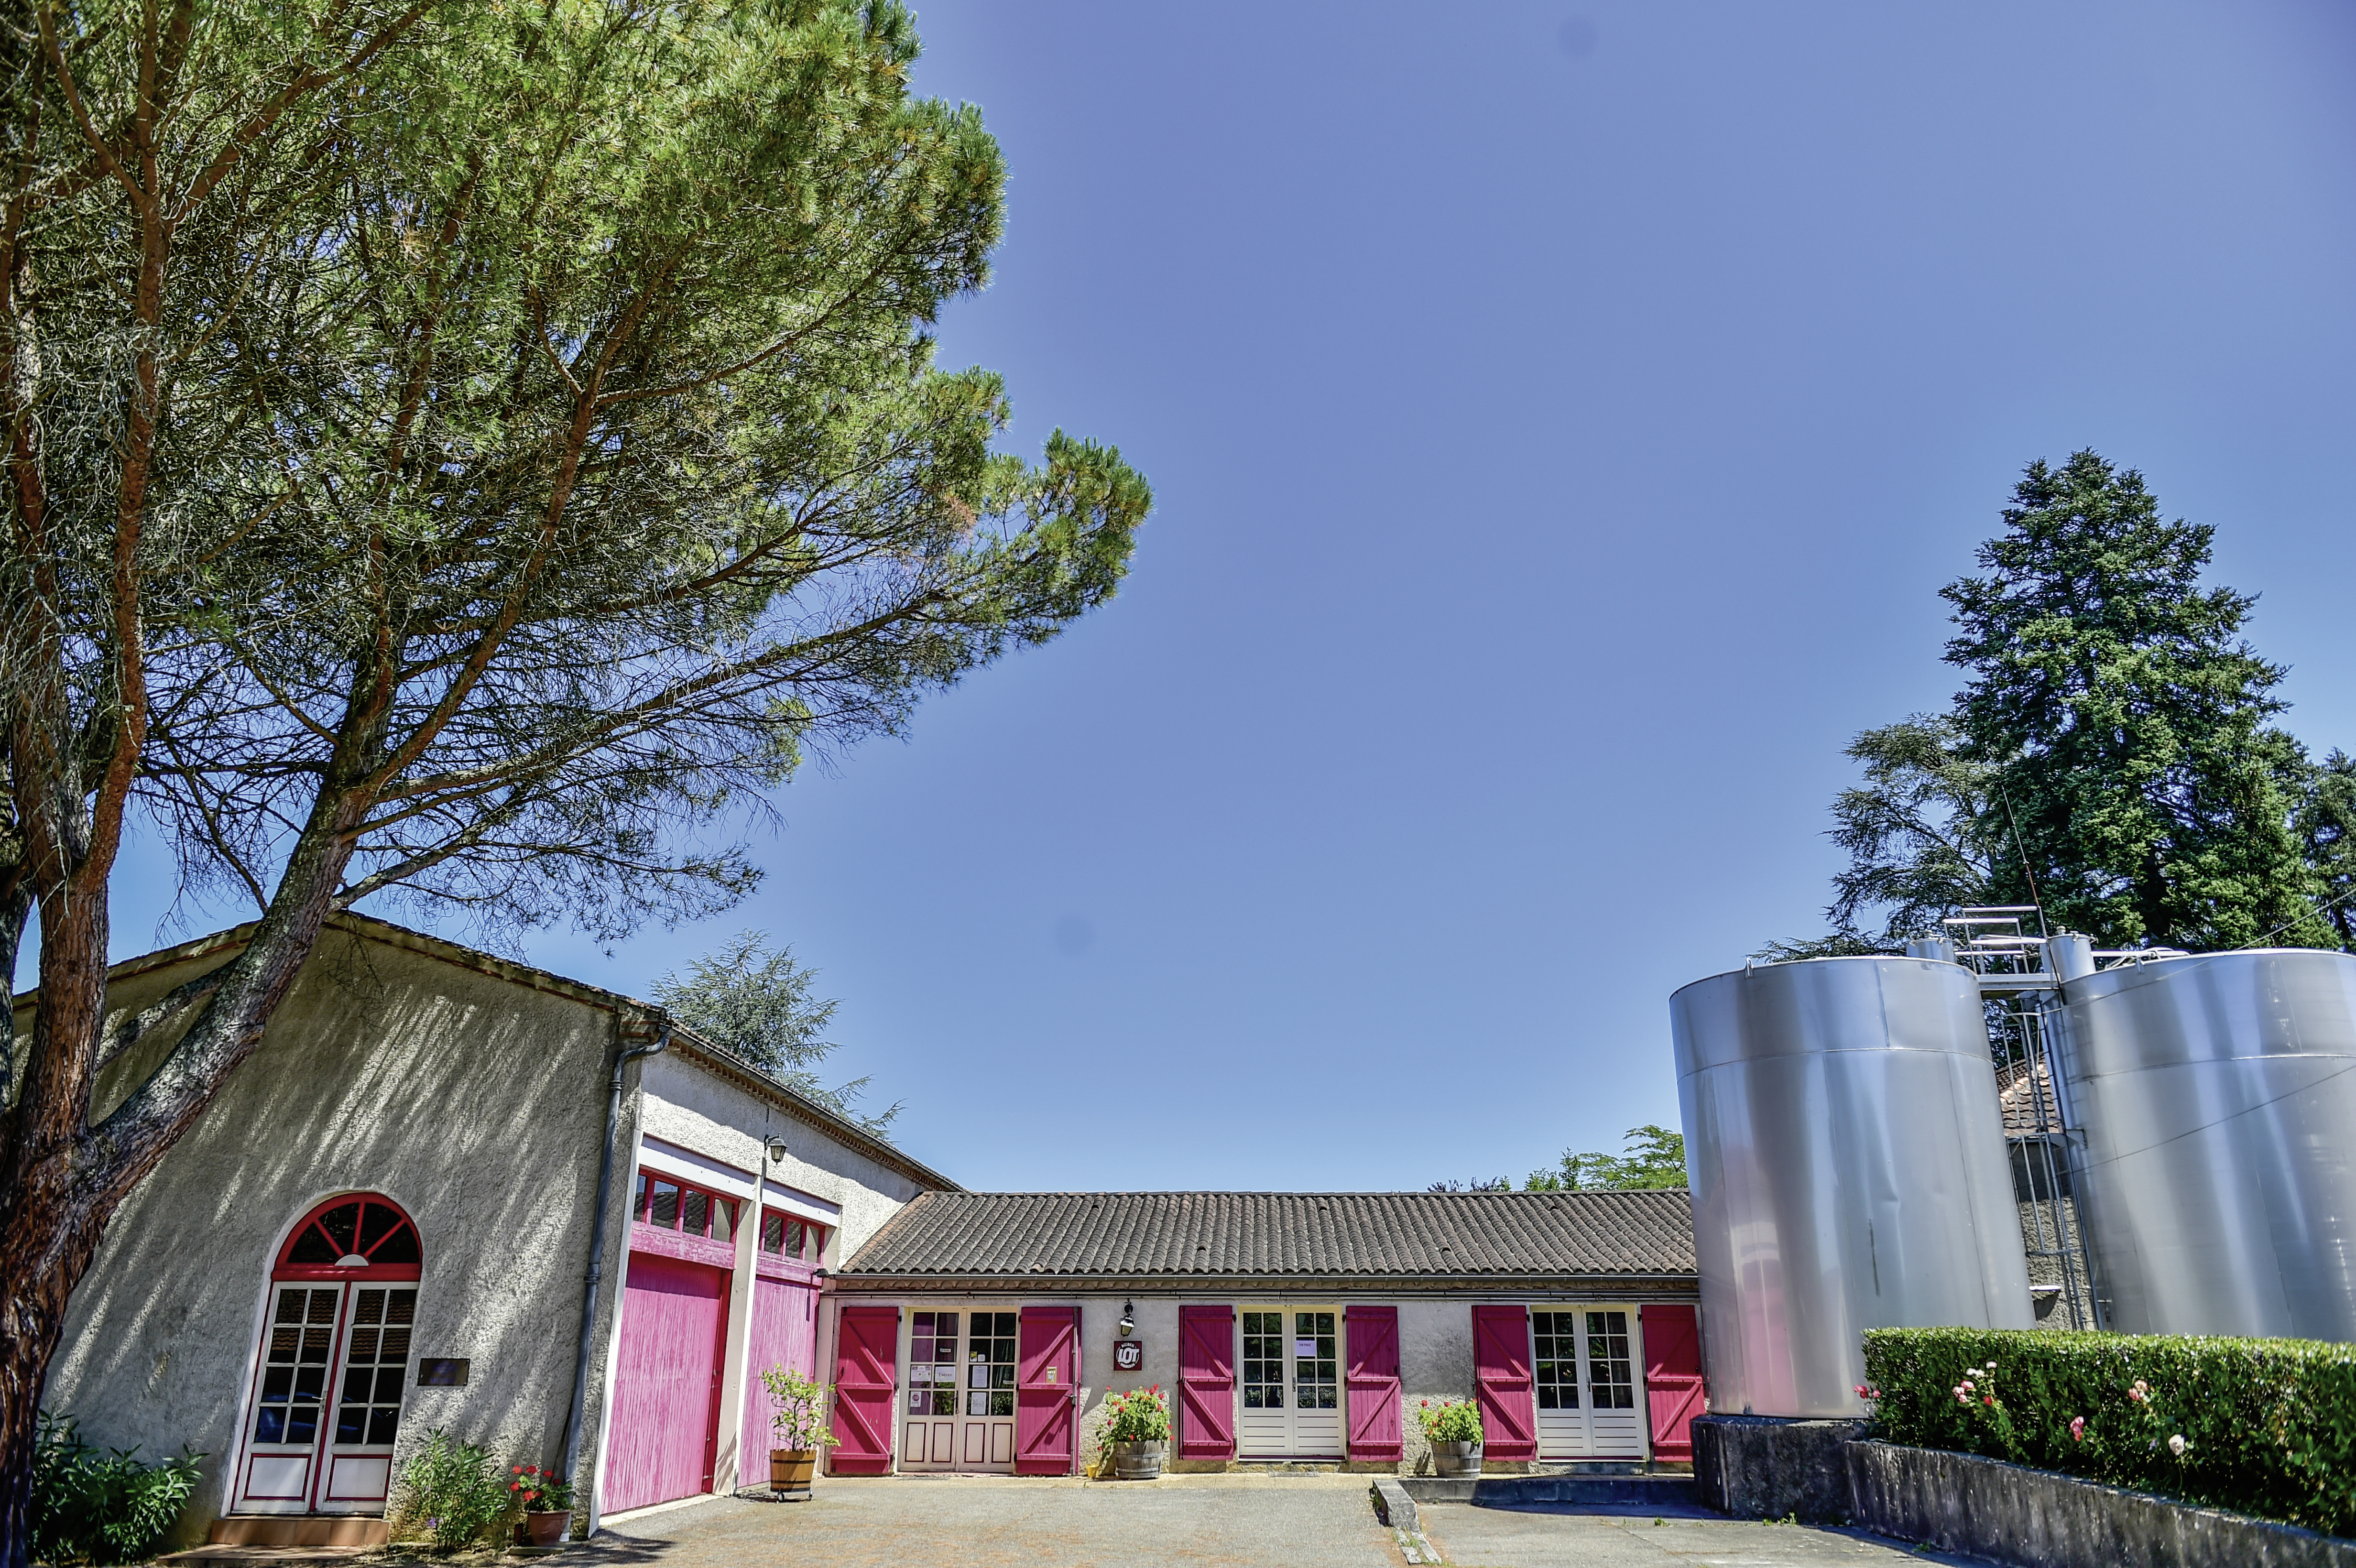 Baldes winery